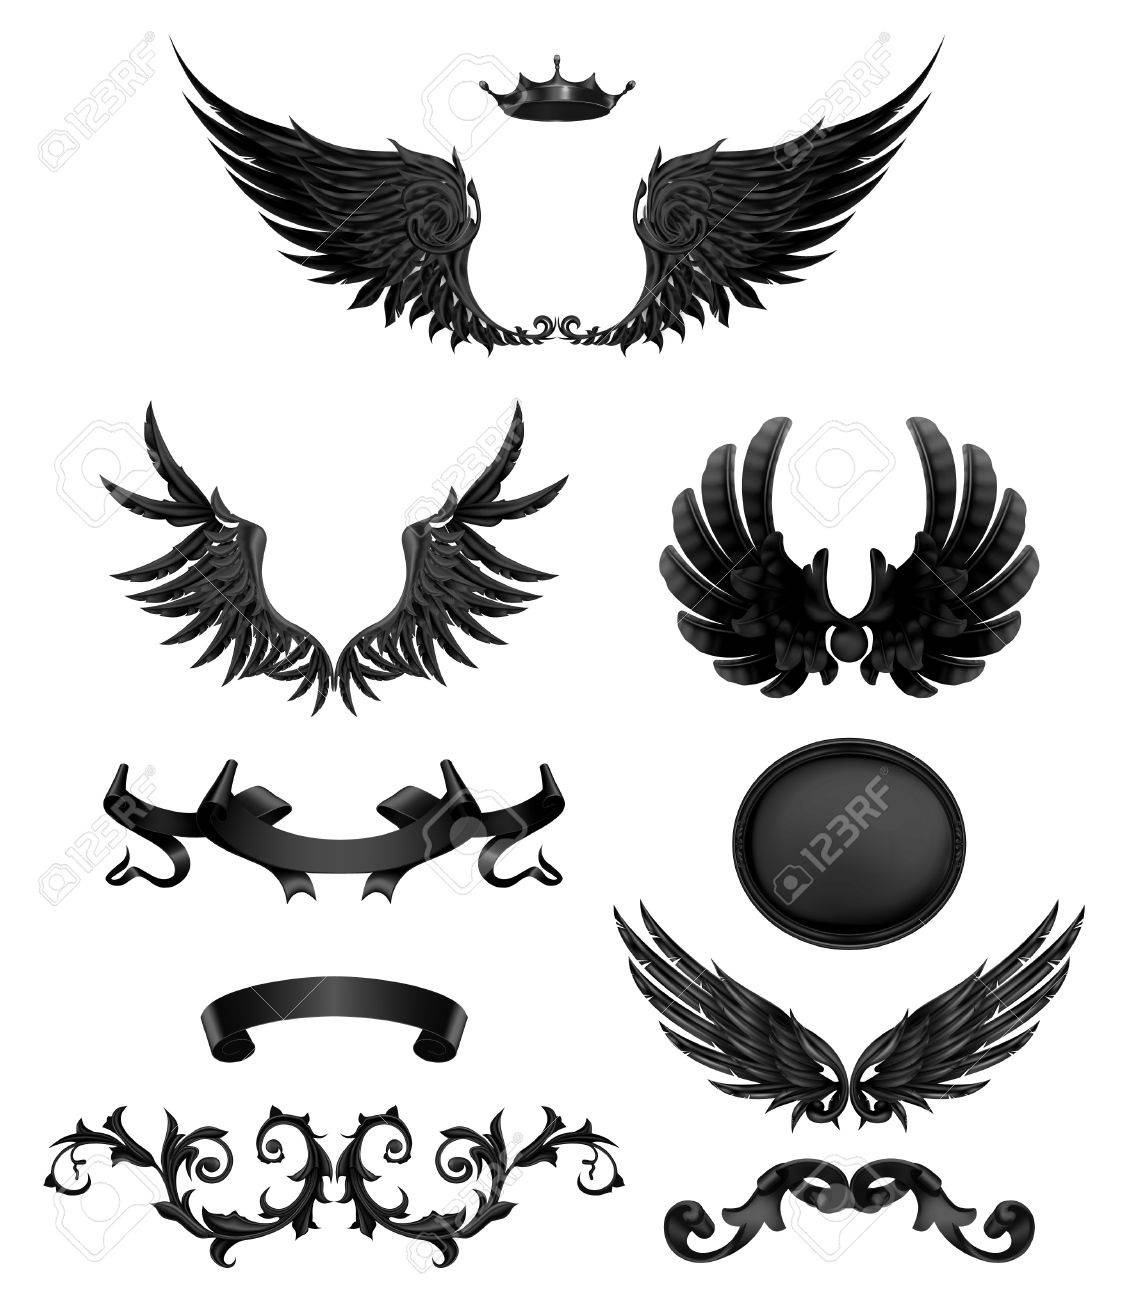 Design elements with wings   Eagle Wings Design